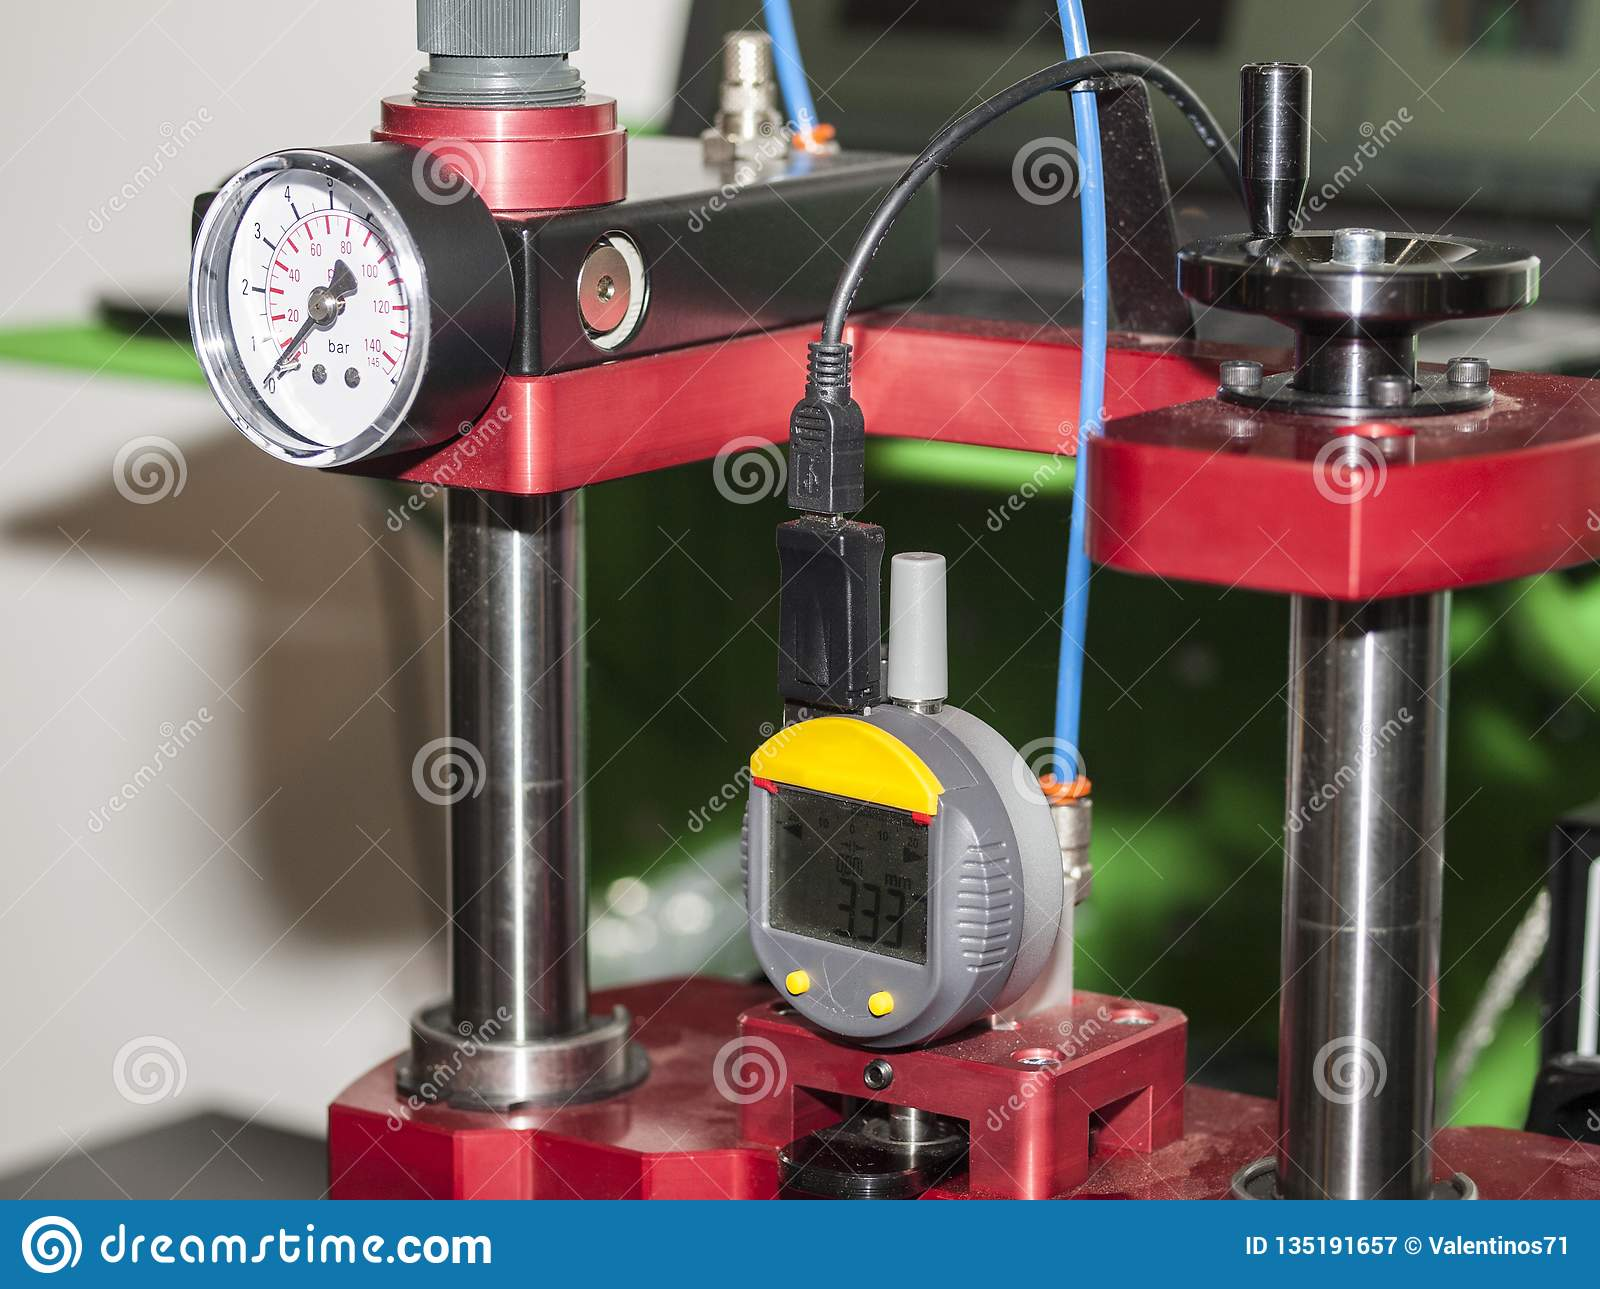 Equipment and tools for diagnostic calibration during maintenance and repair of vehicles